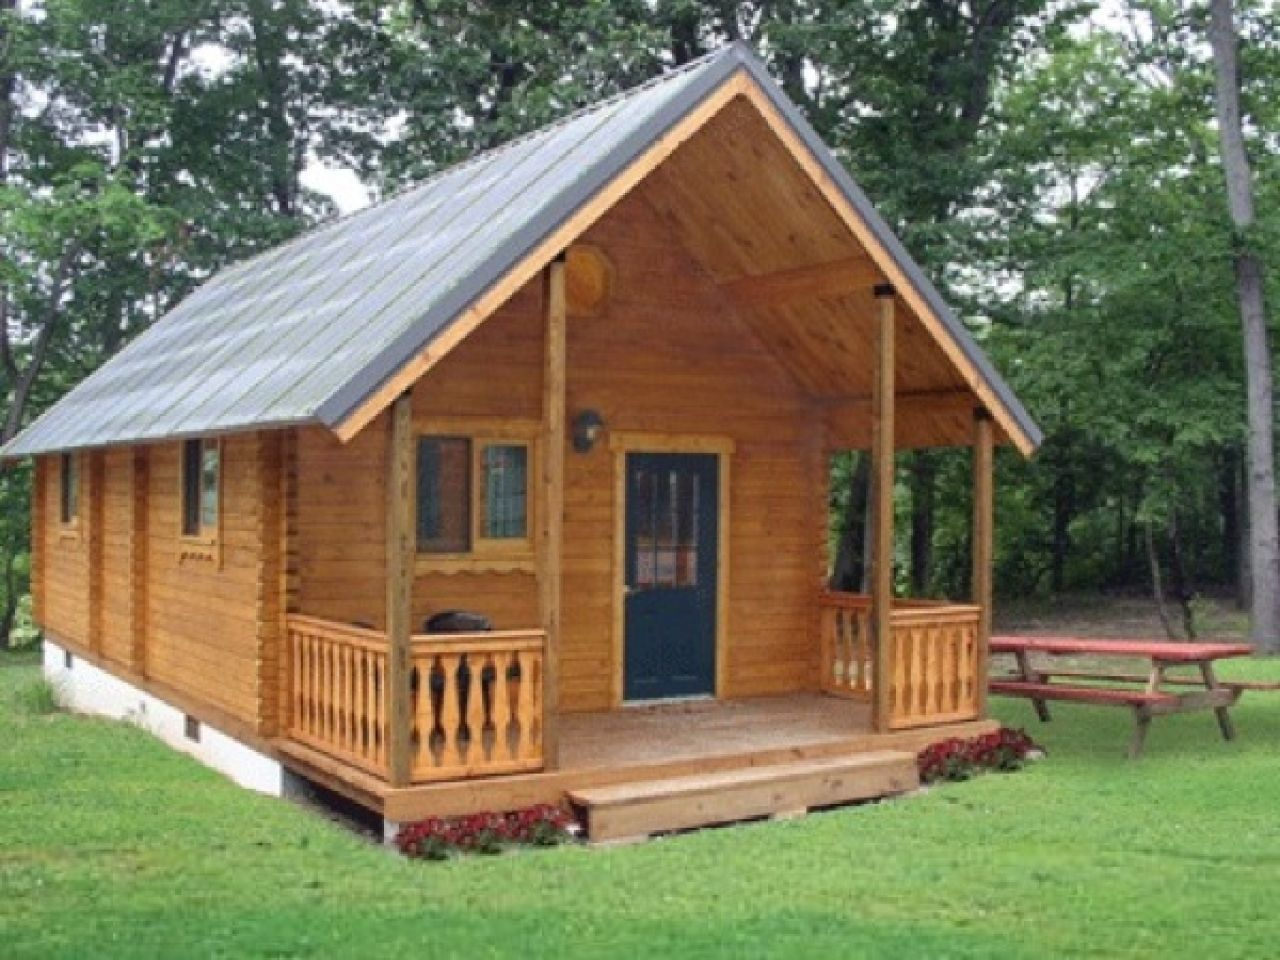 Small cabins with lofts small cabins under 800 sq ft 800 for Small modular cabins and cottages